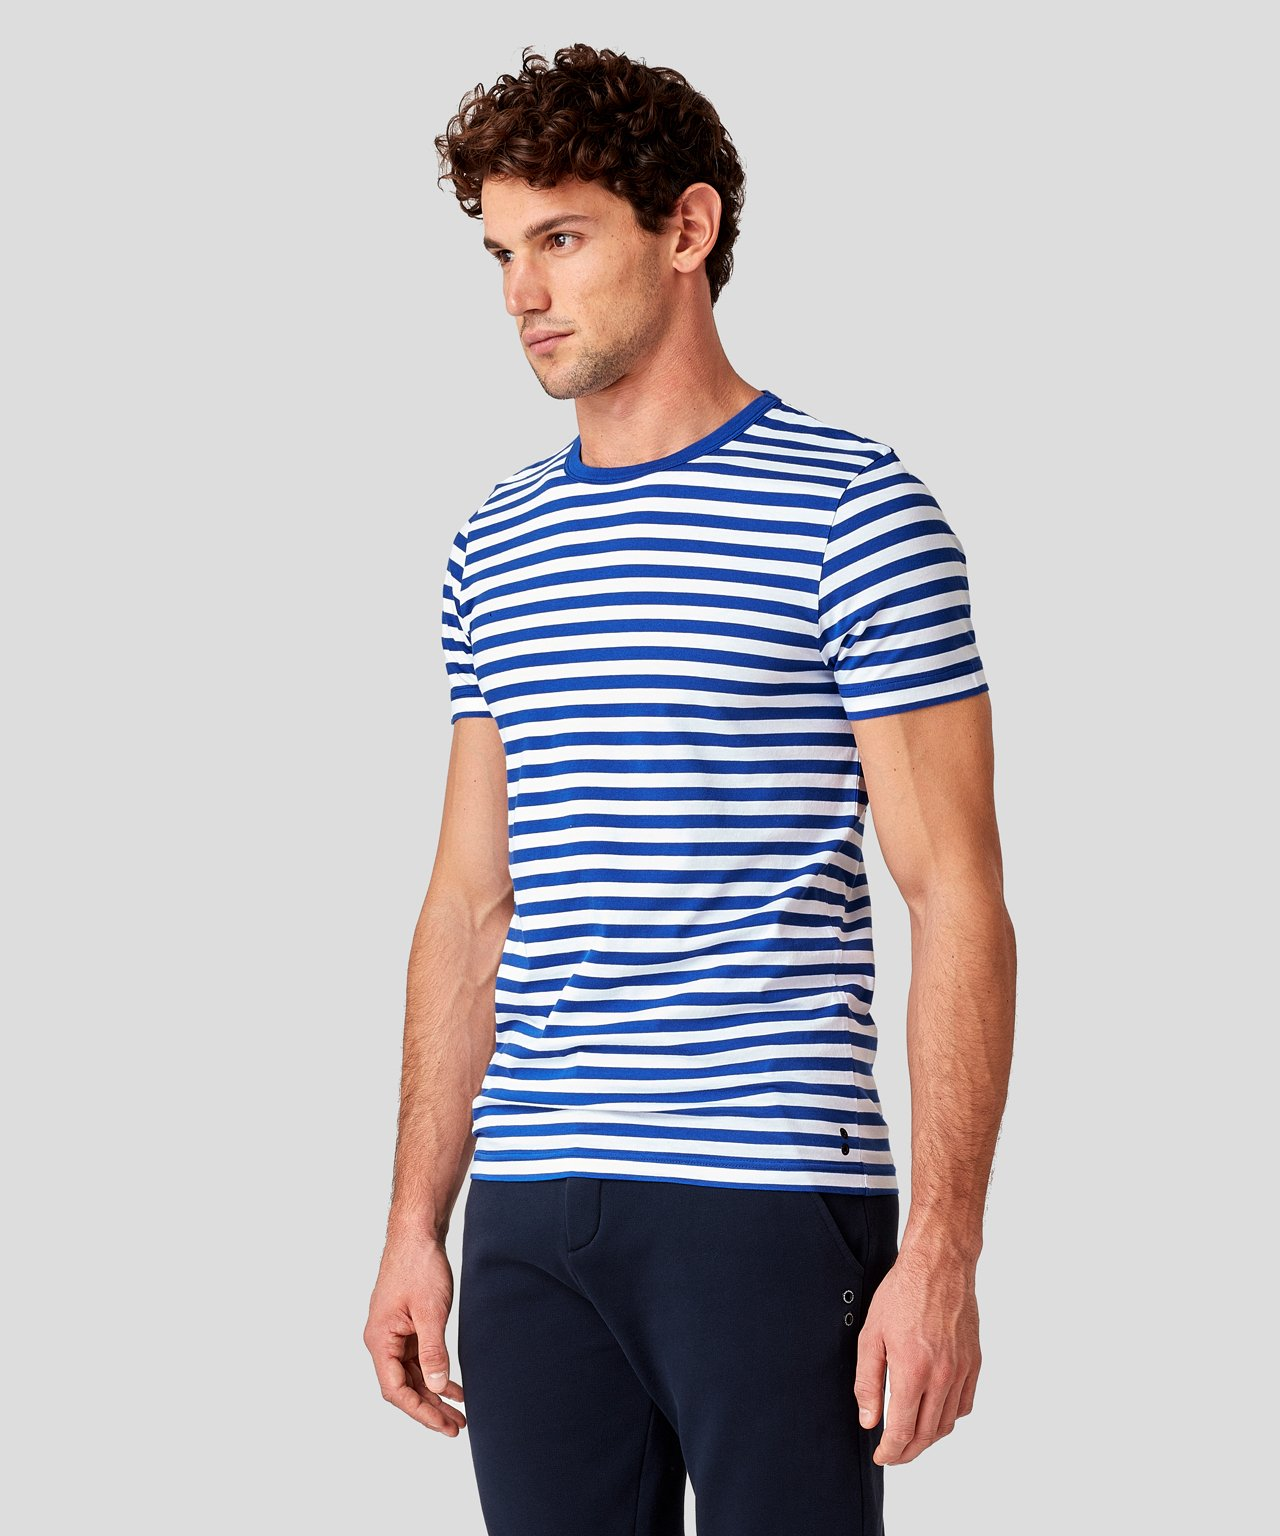 T-Shirt Eyelet Edition Stripes - electric blue/white